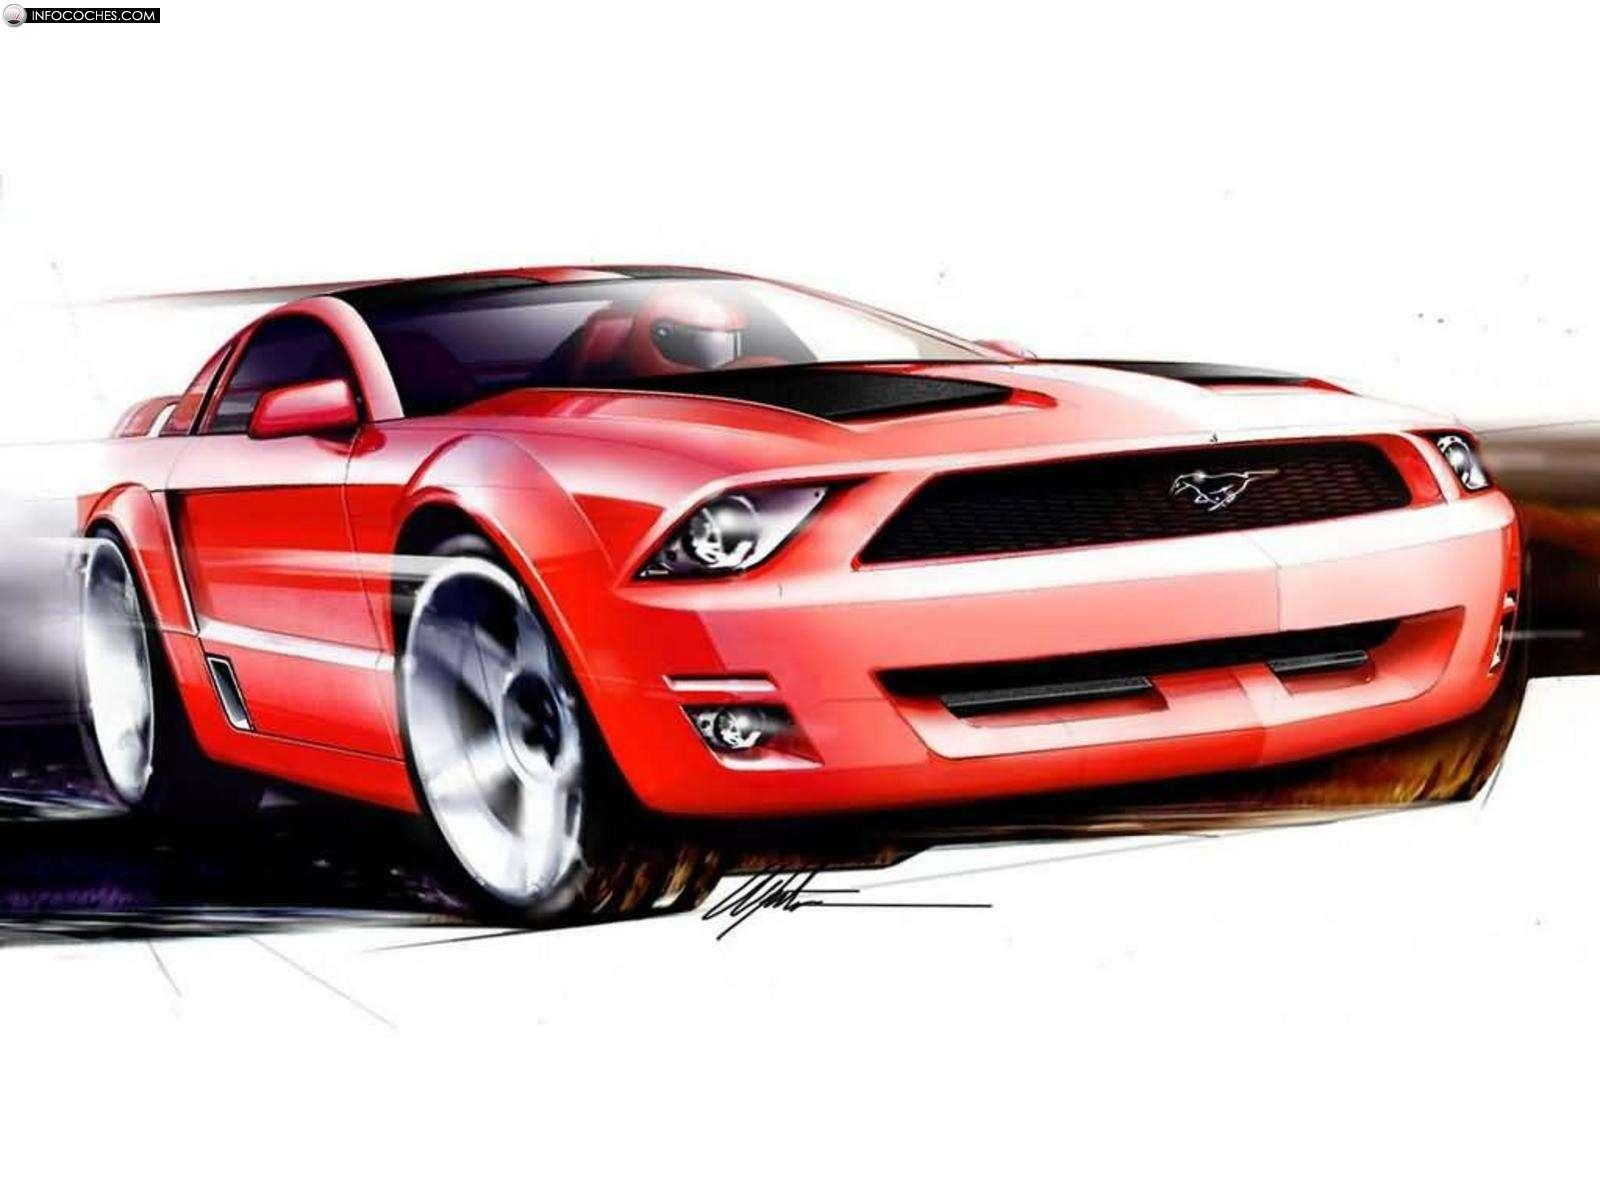 2019 Ford Mustang GT Coupe Concept photo - 1